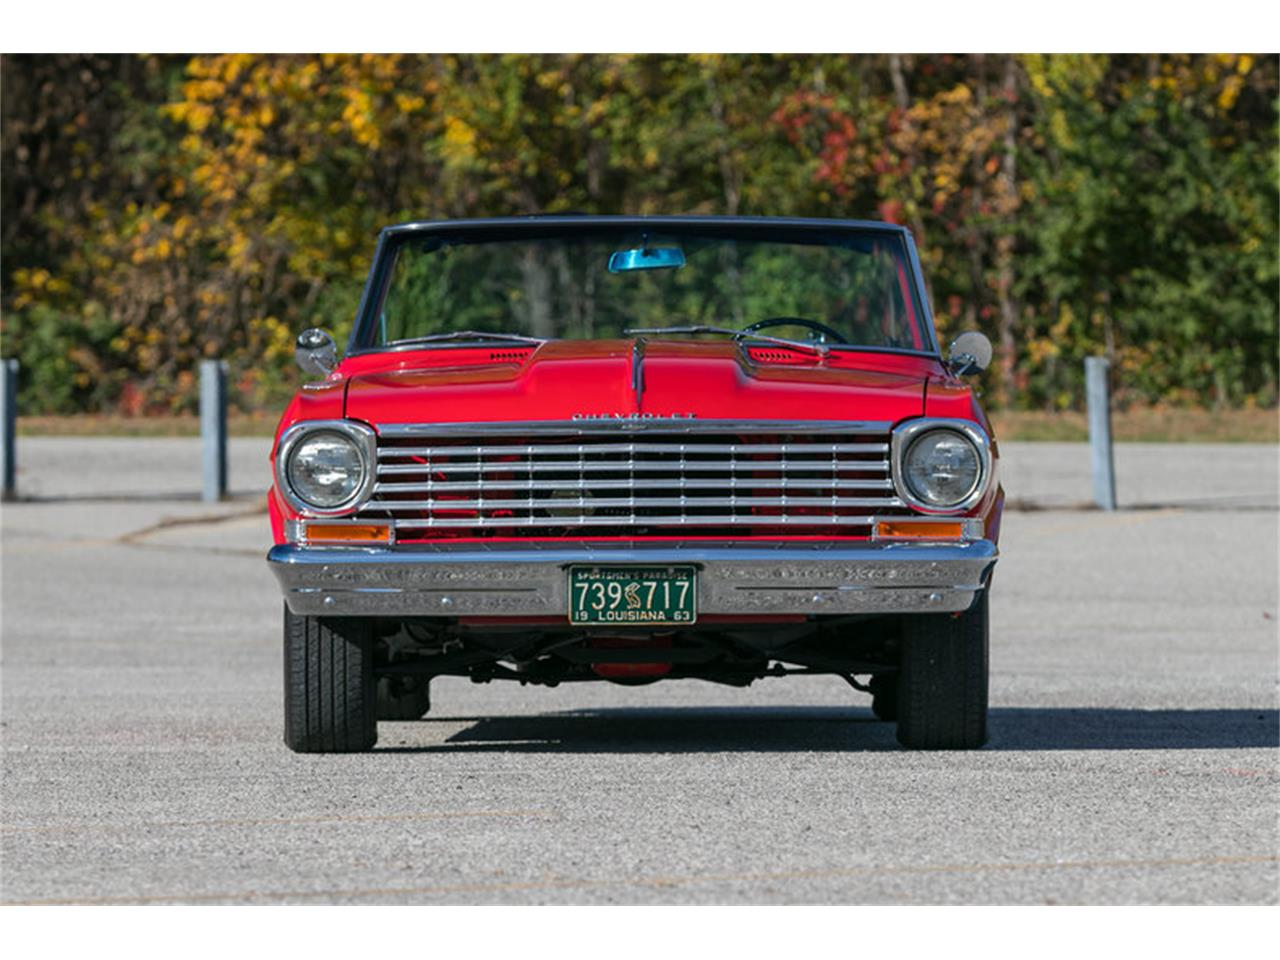 Large Picture of Classic '63 Chevy II Nova located in St. Charles Missouri - MAT6